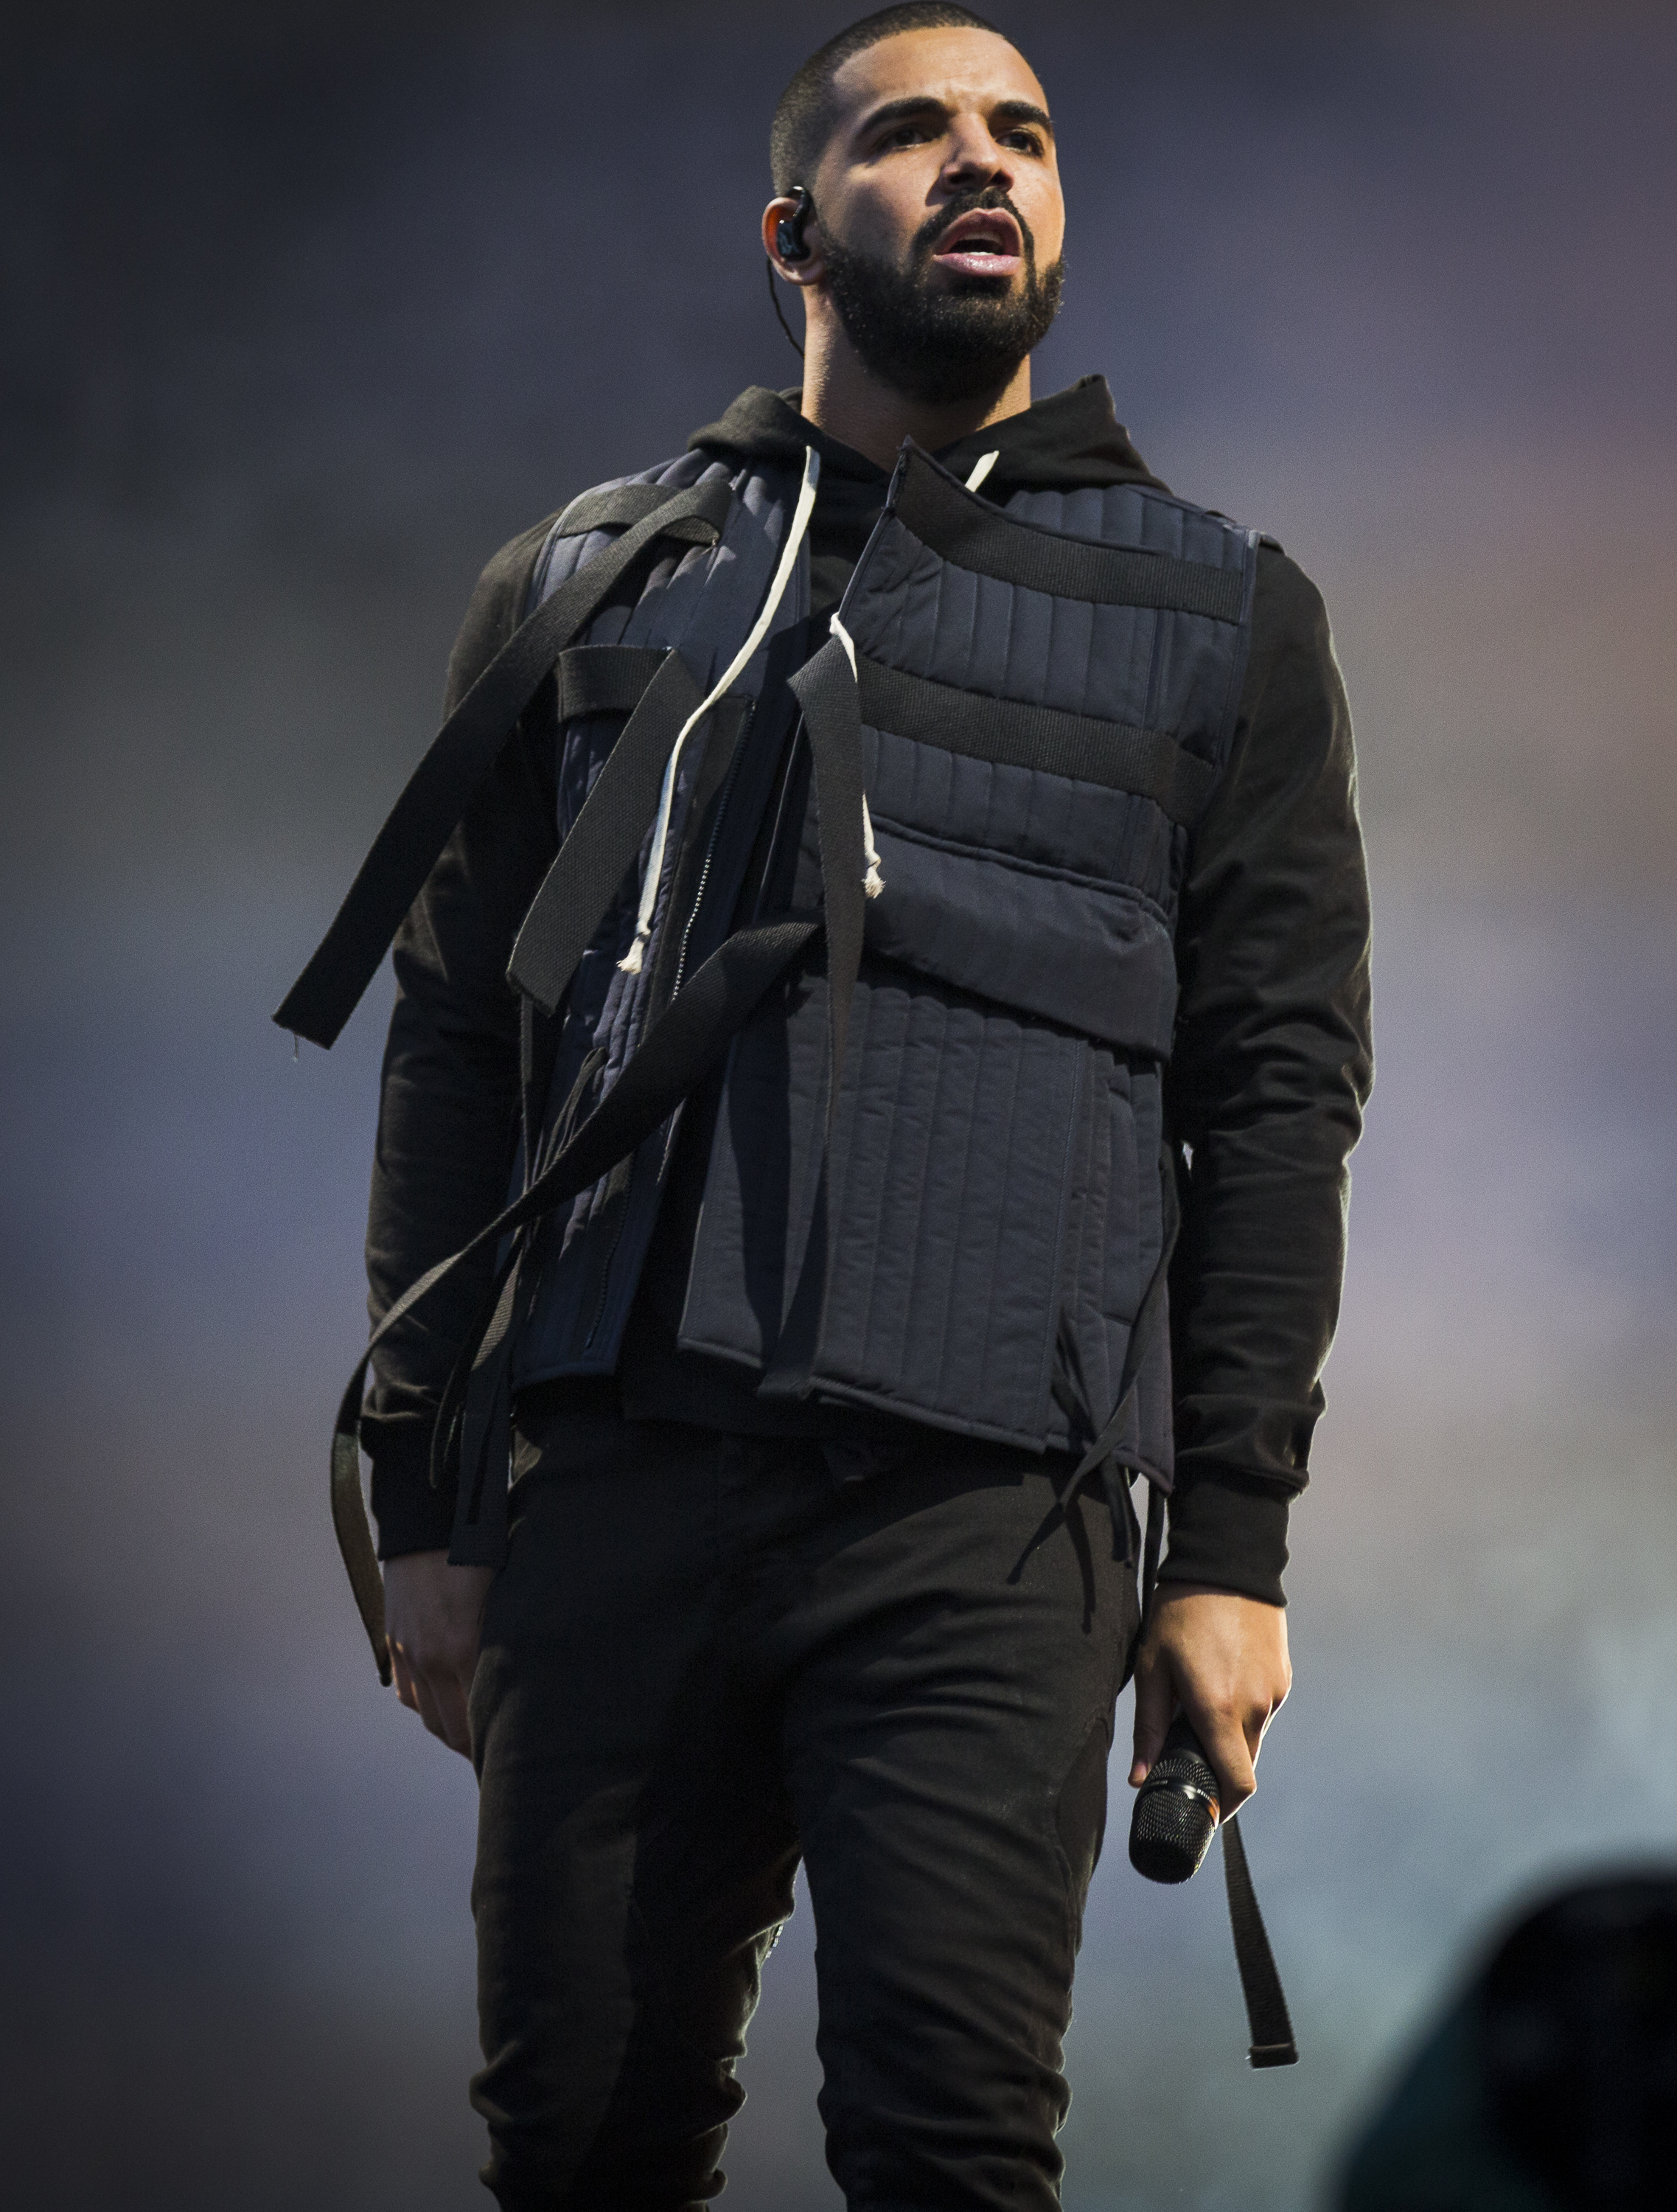 Drake High Quality Wallpapers For Iphone